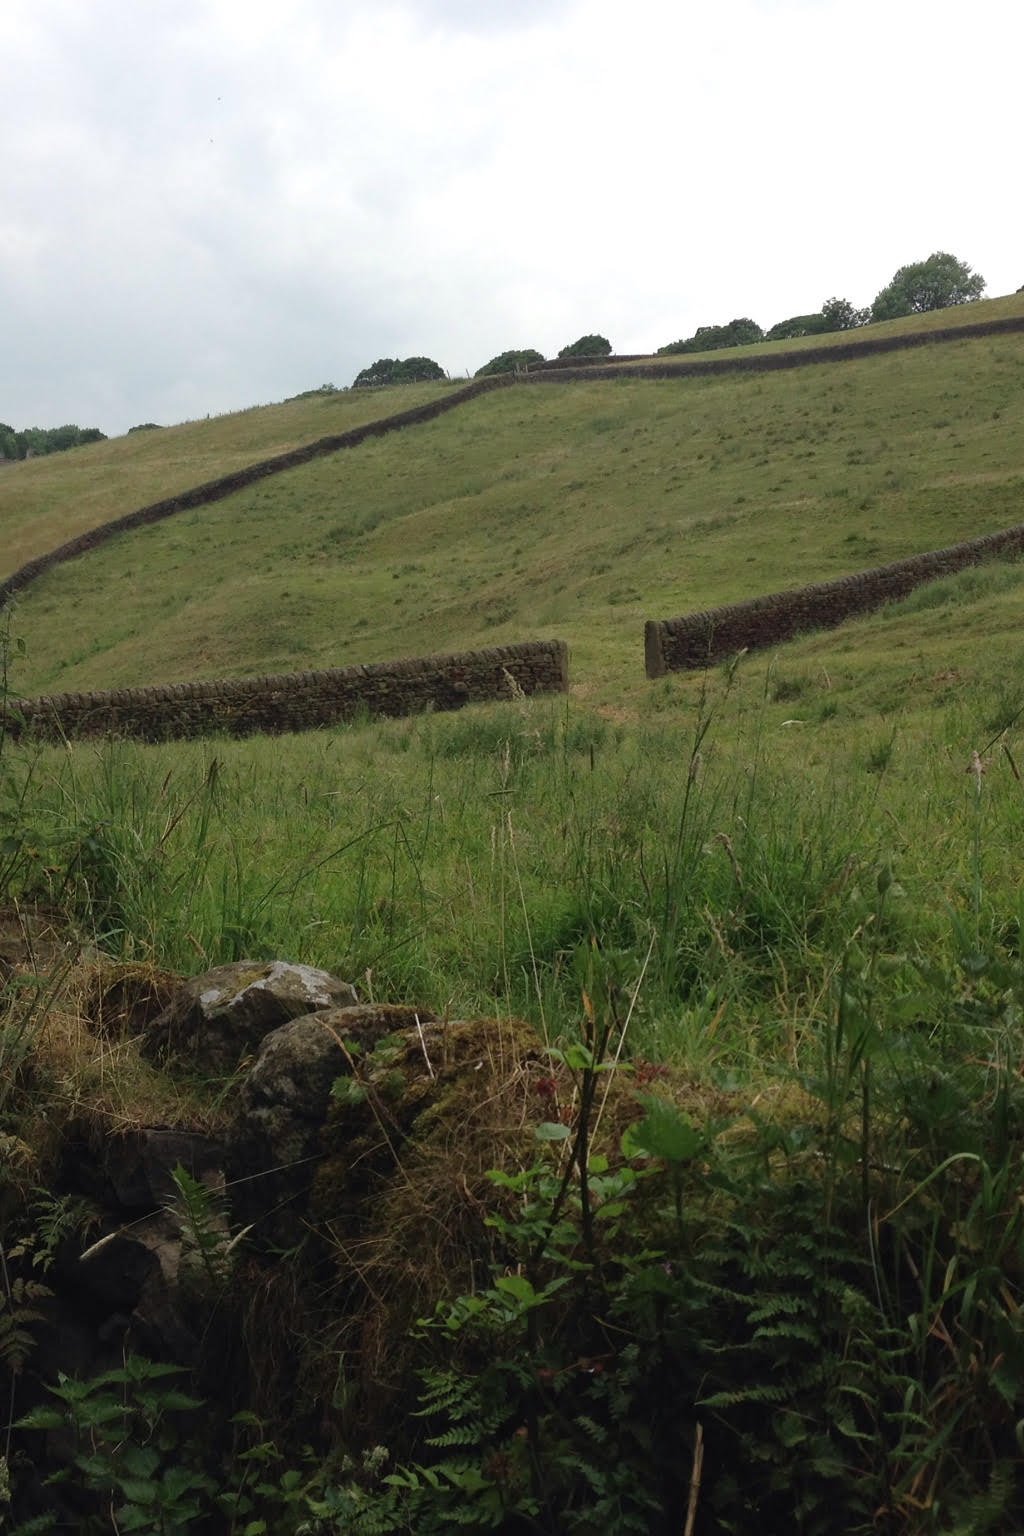 Stone walls dividing the land of West Yorkshire hill side